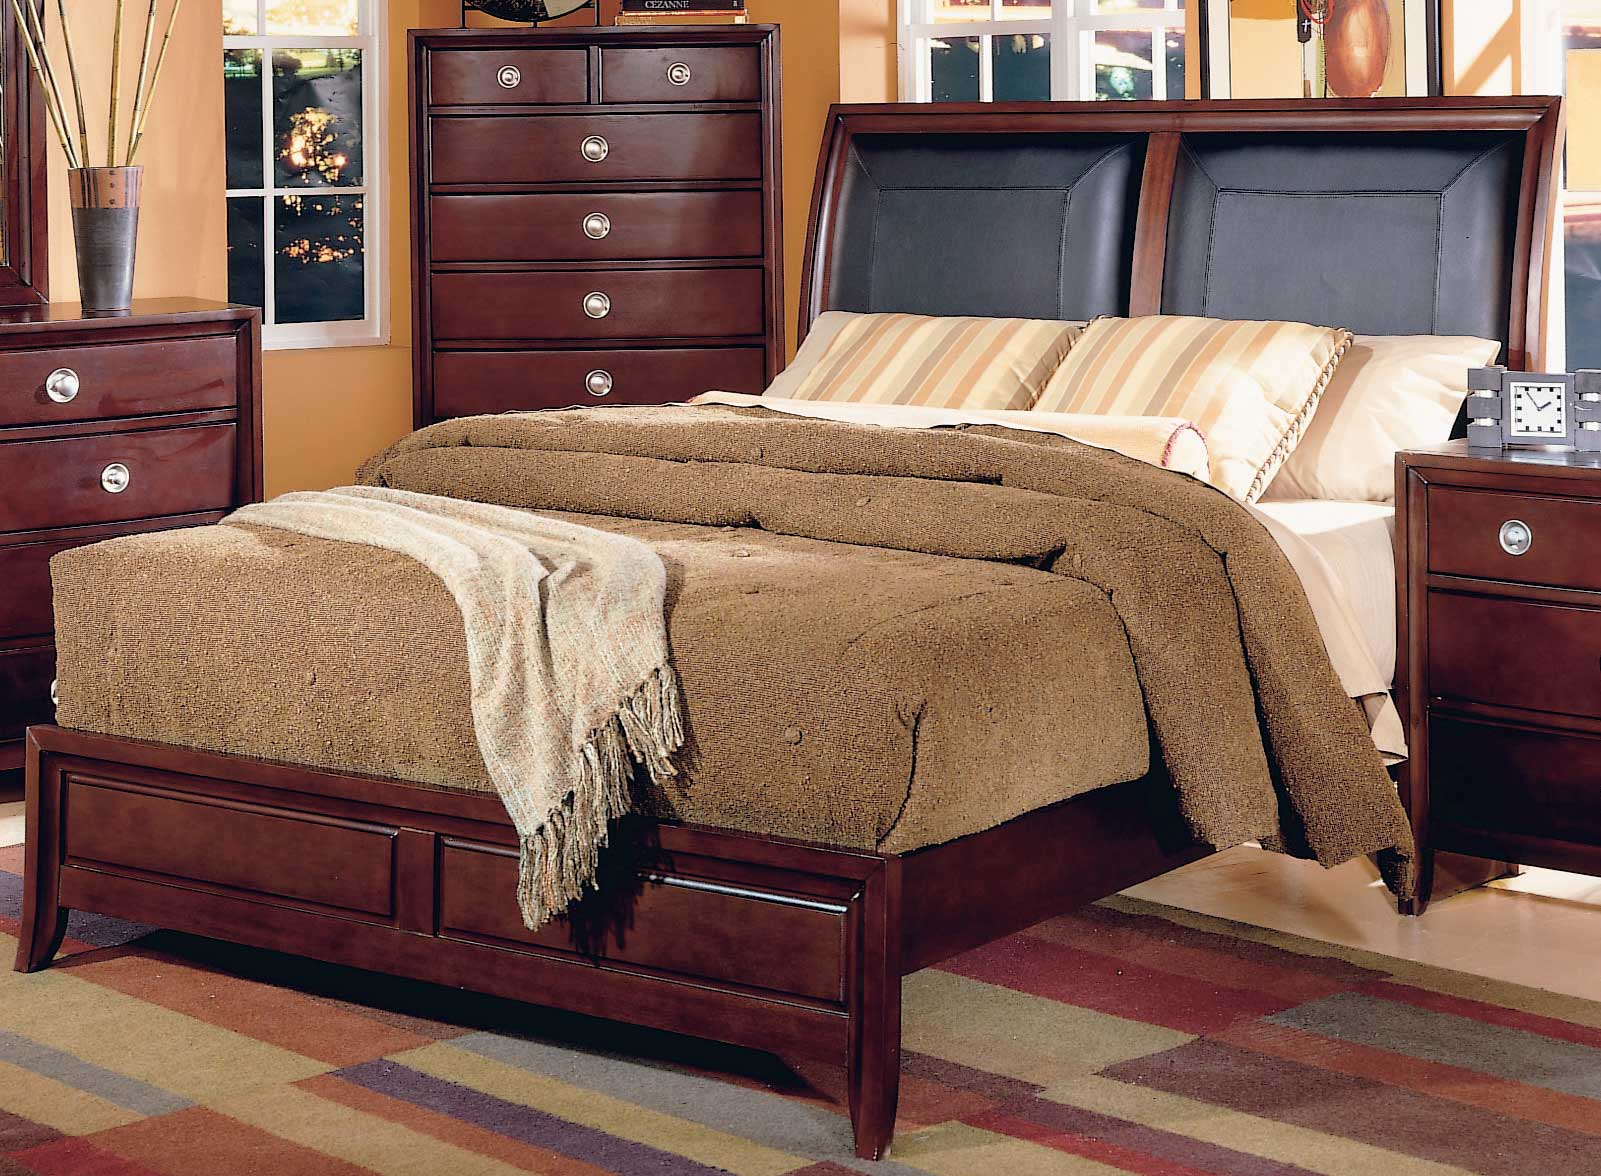 Picture of: Homelegance Capria Sleigh Bed Leather Headboard 878ll 1 At Homelement Com